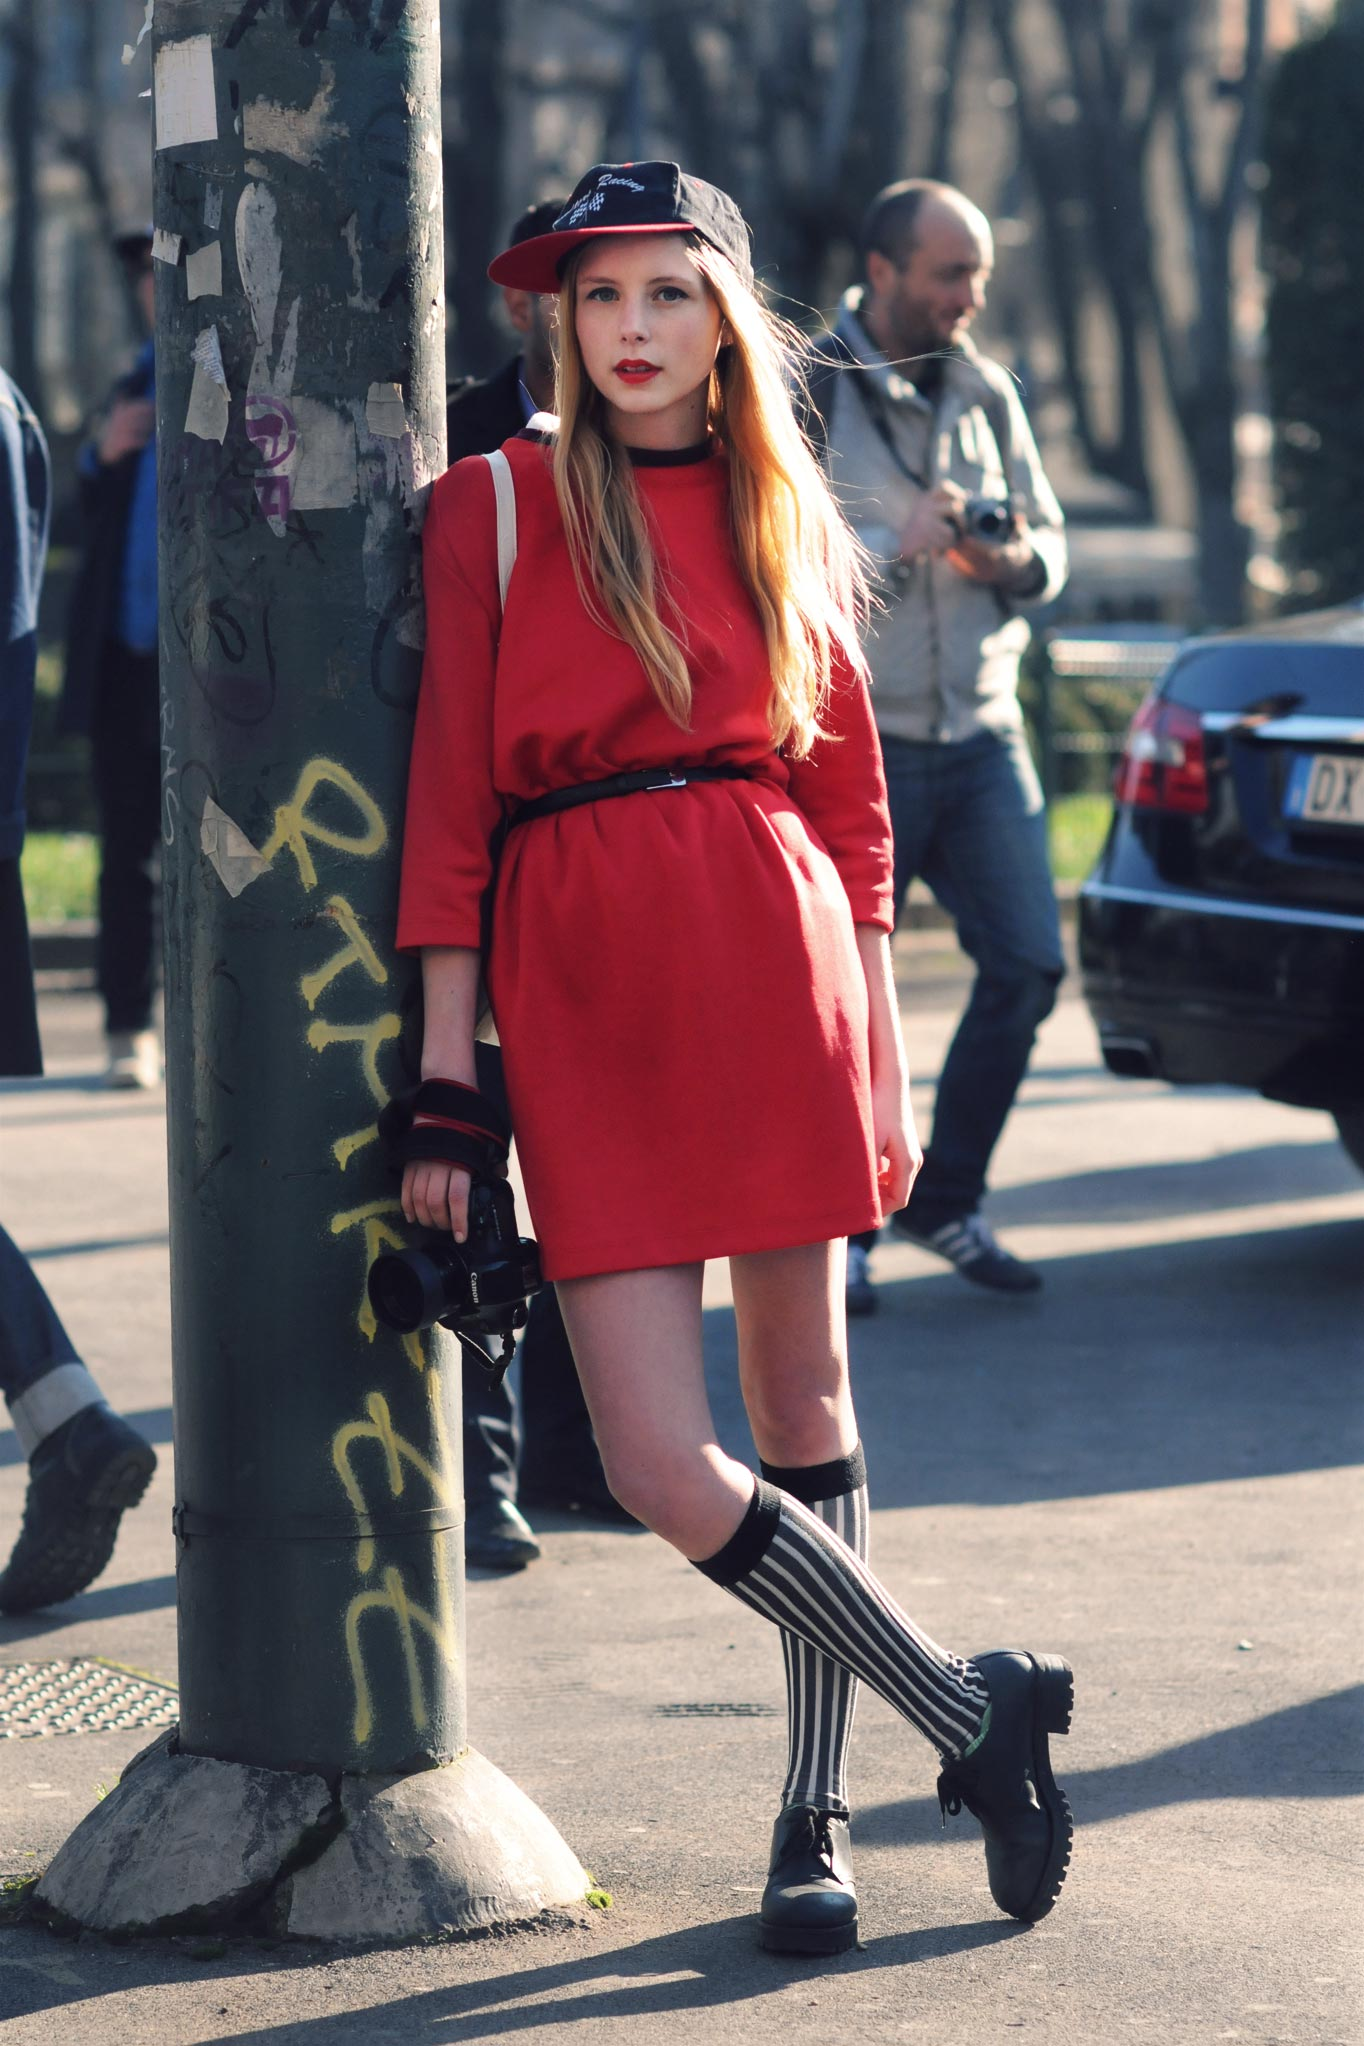 Marie Myrhøj Jensen at Milan Fashion Week Fall/Winter 2014